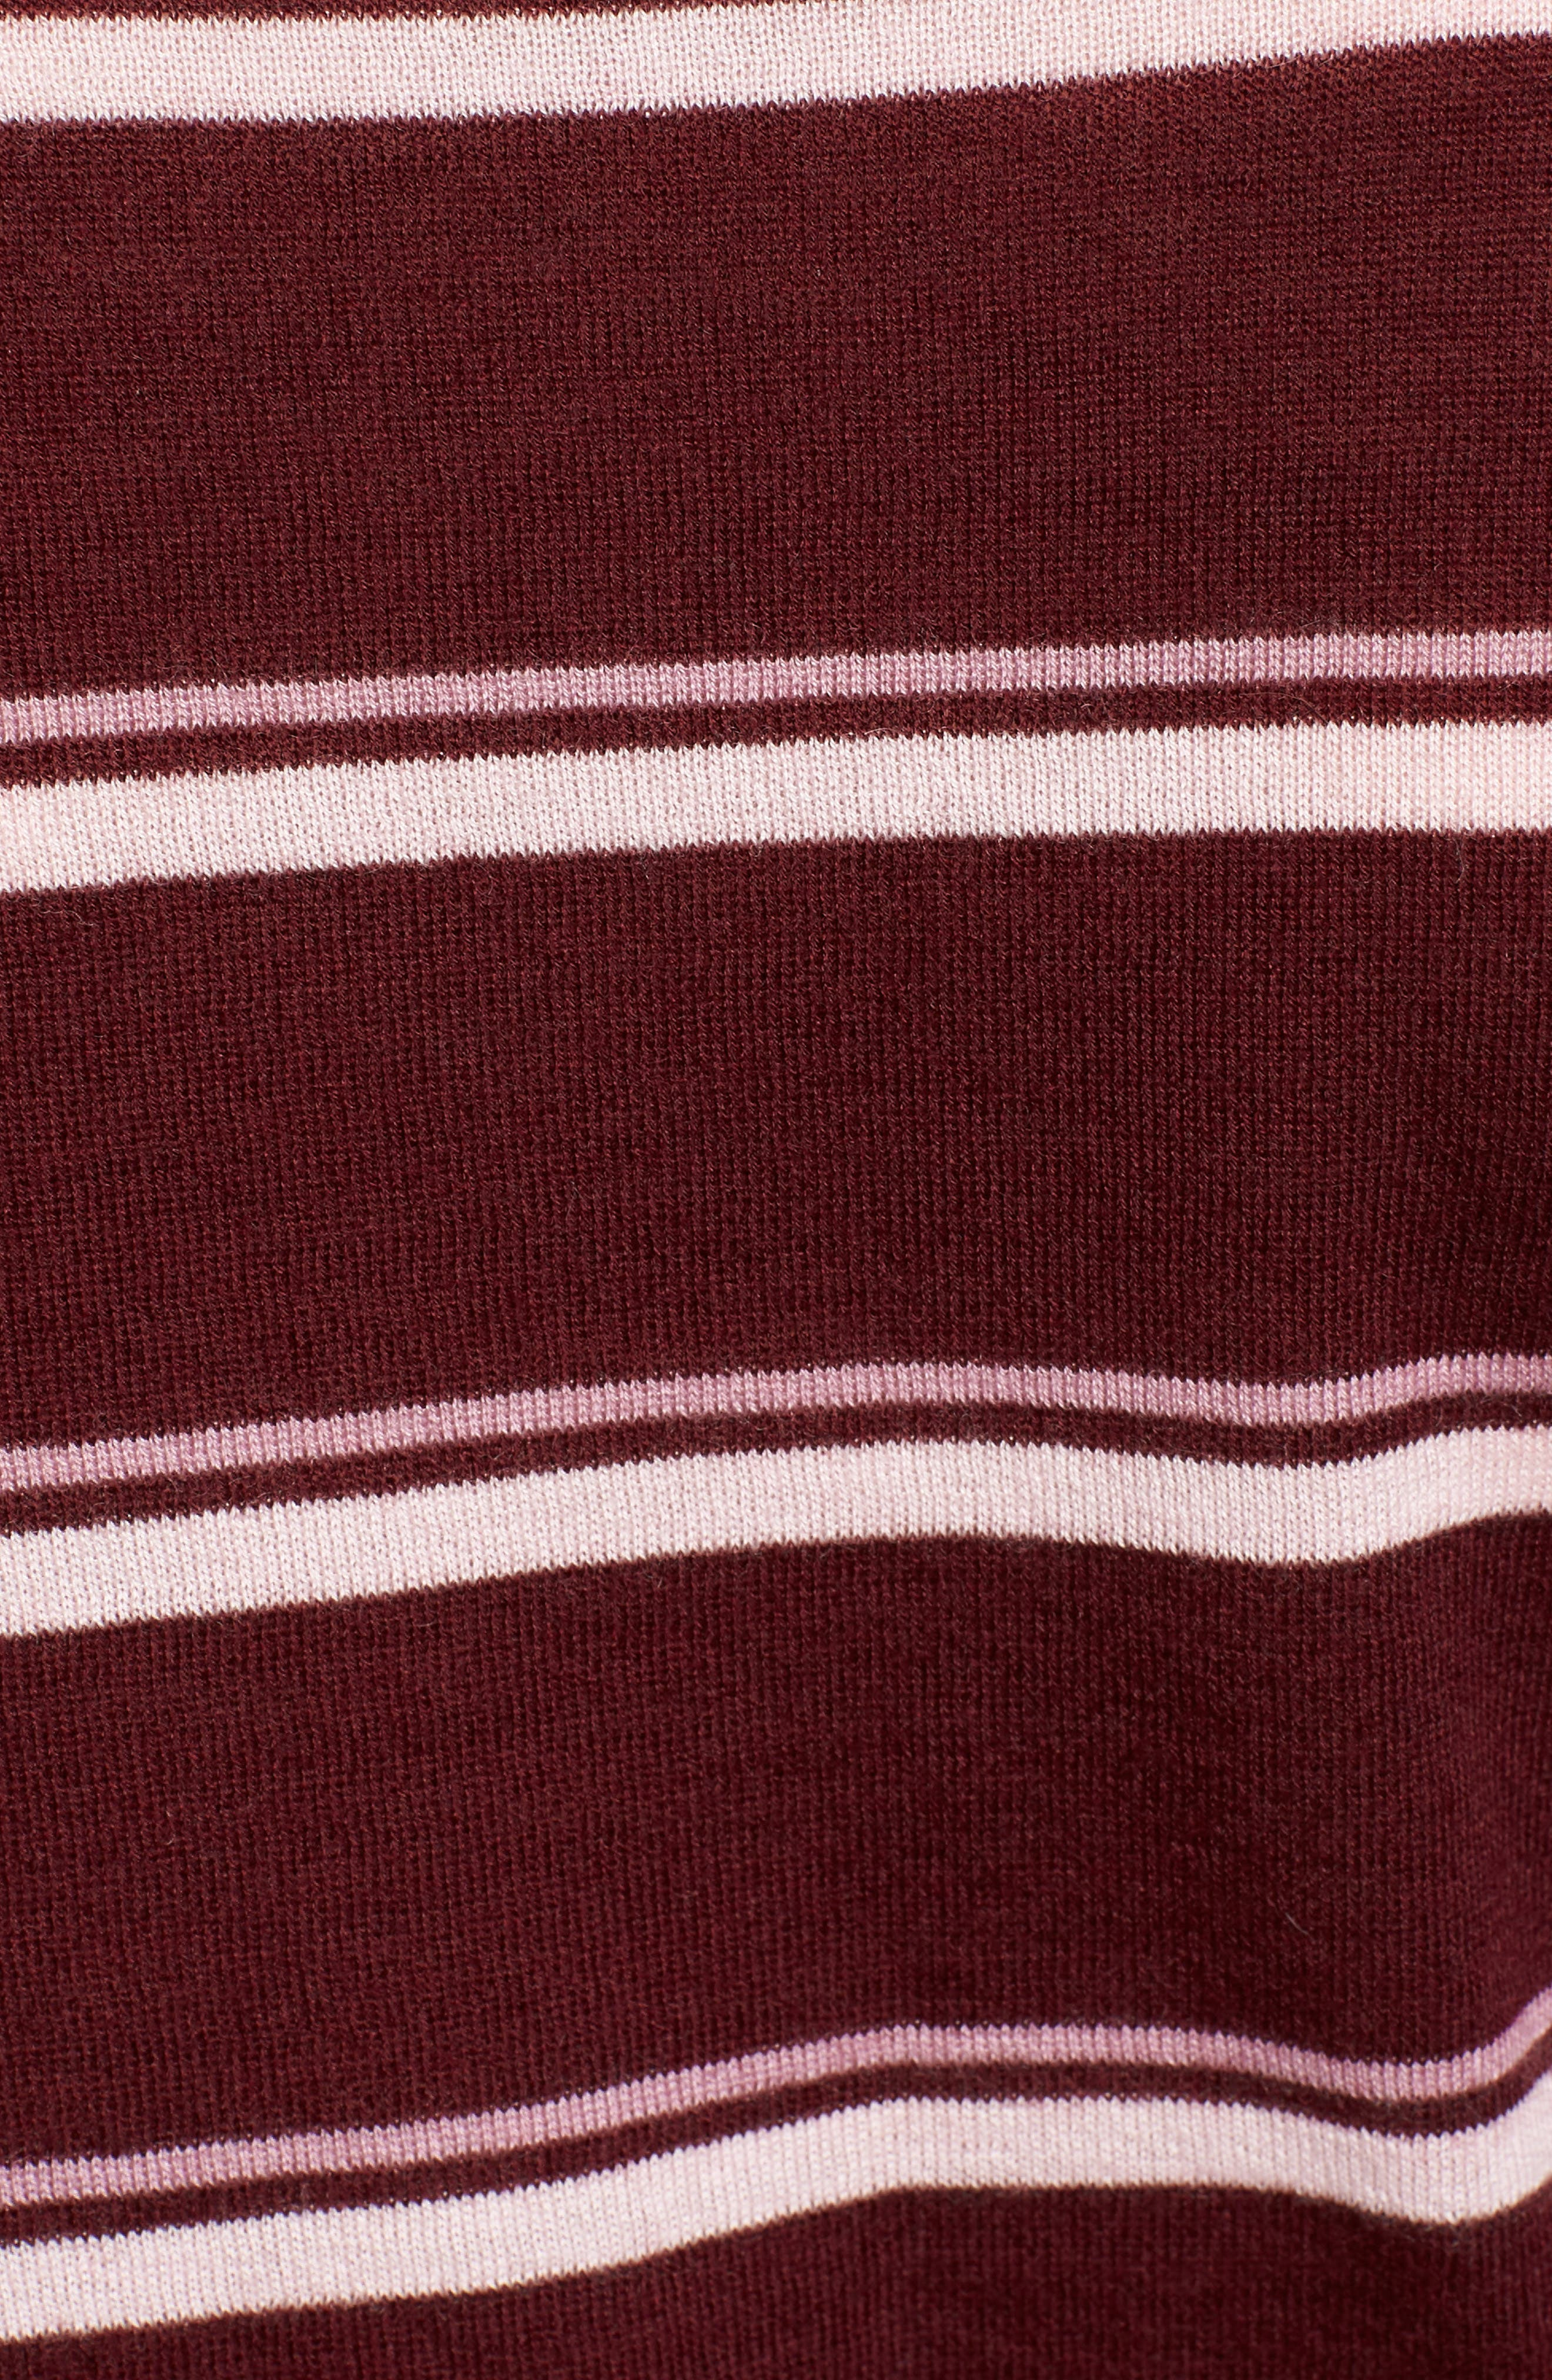 Stripe Cashmere Sweater,                             Alternate thumbnail 5, color,                             BURGUNDY STEP STRIPE